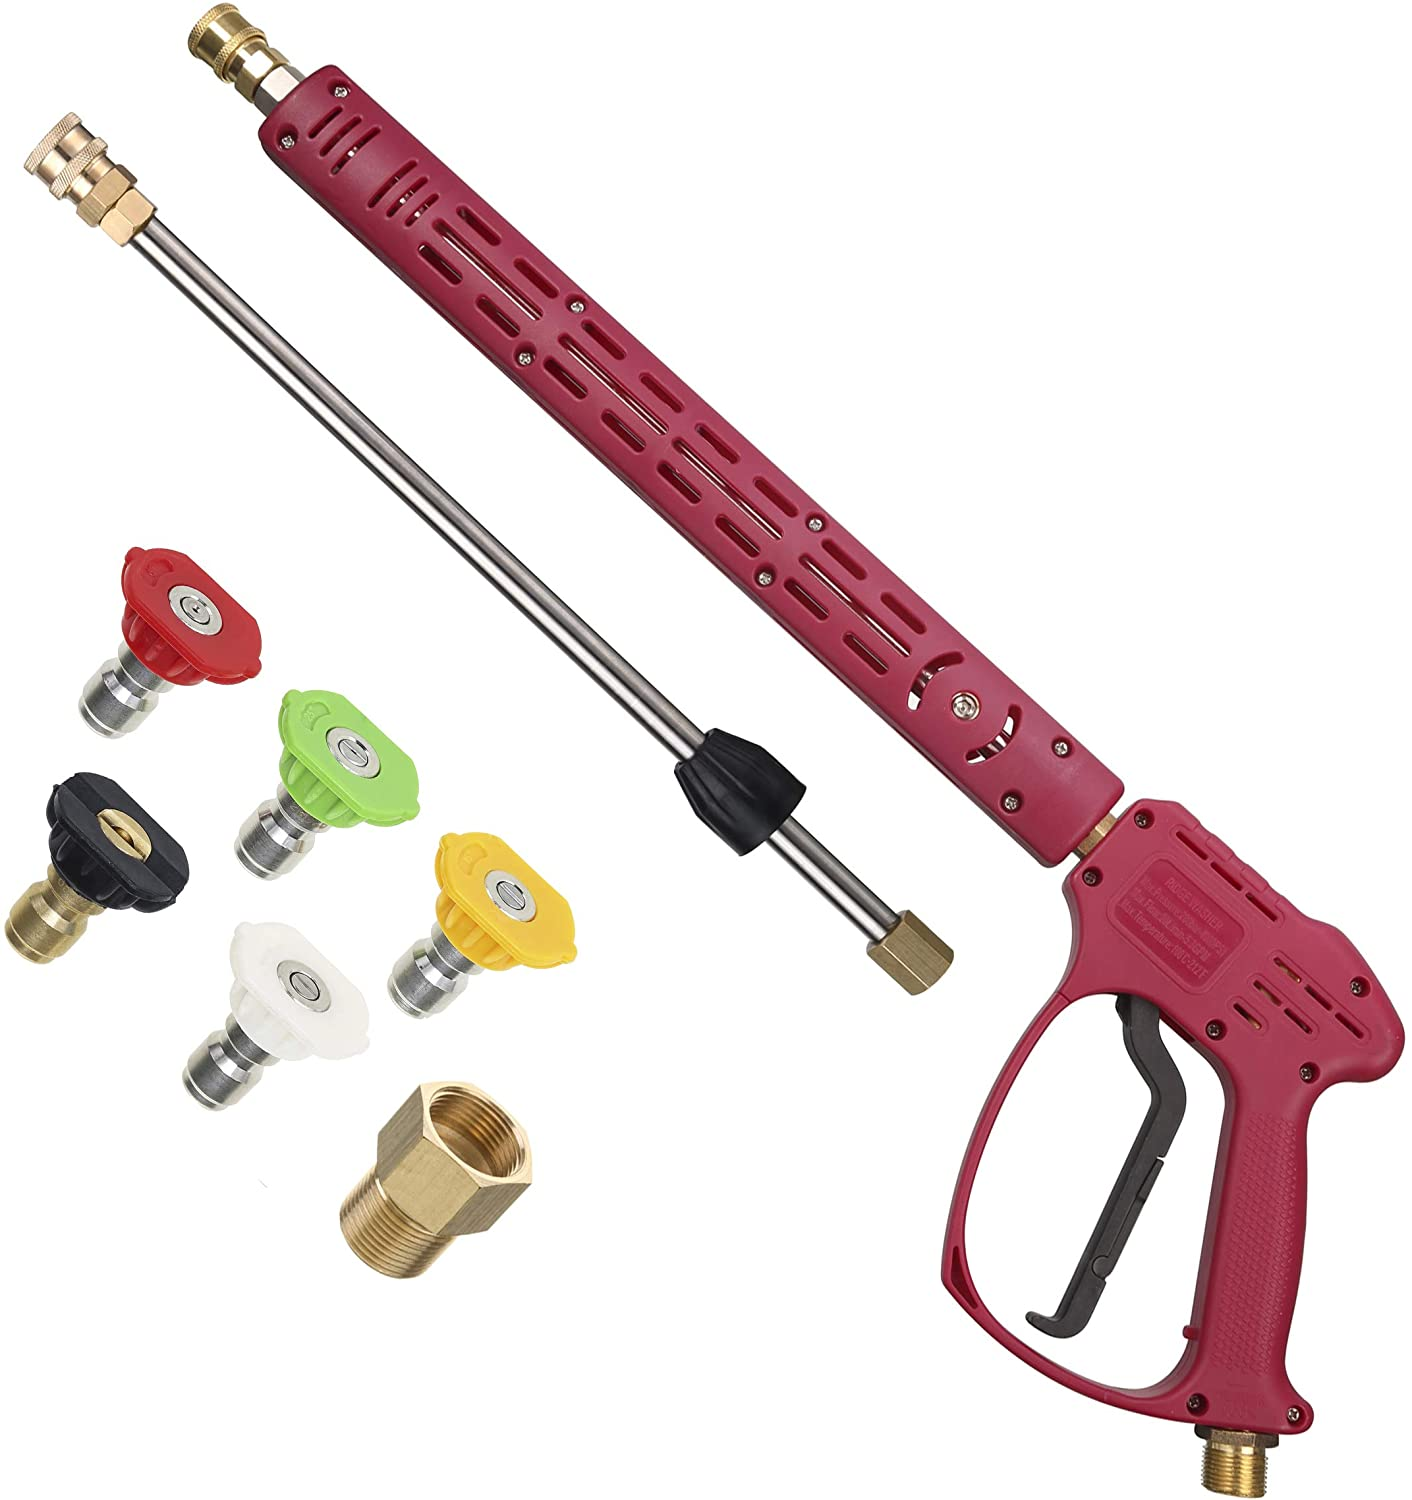 RIDGE WASHER Pressure Washer Gun with Extension Wand for Hot and Cold Water